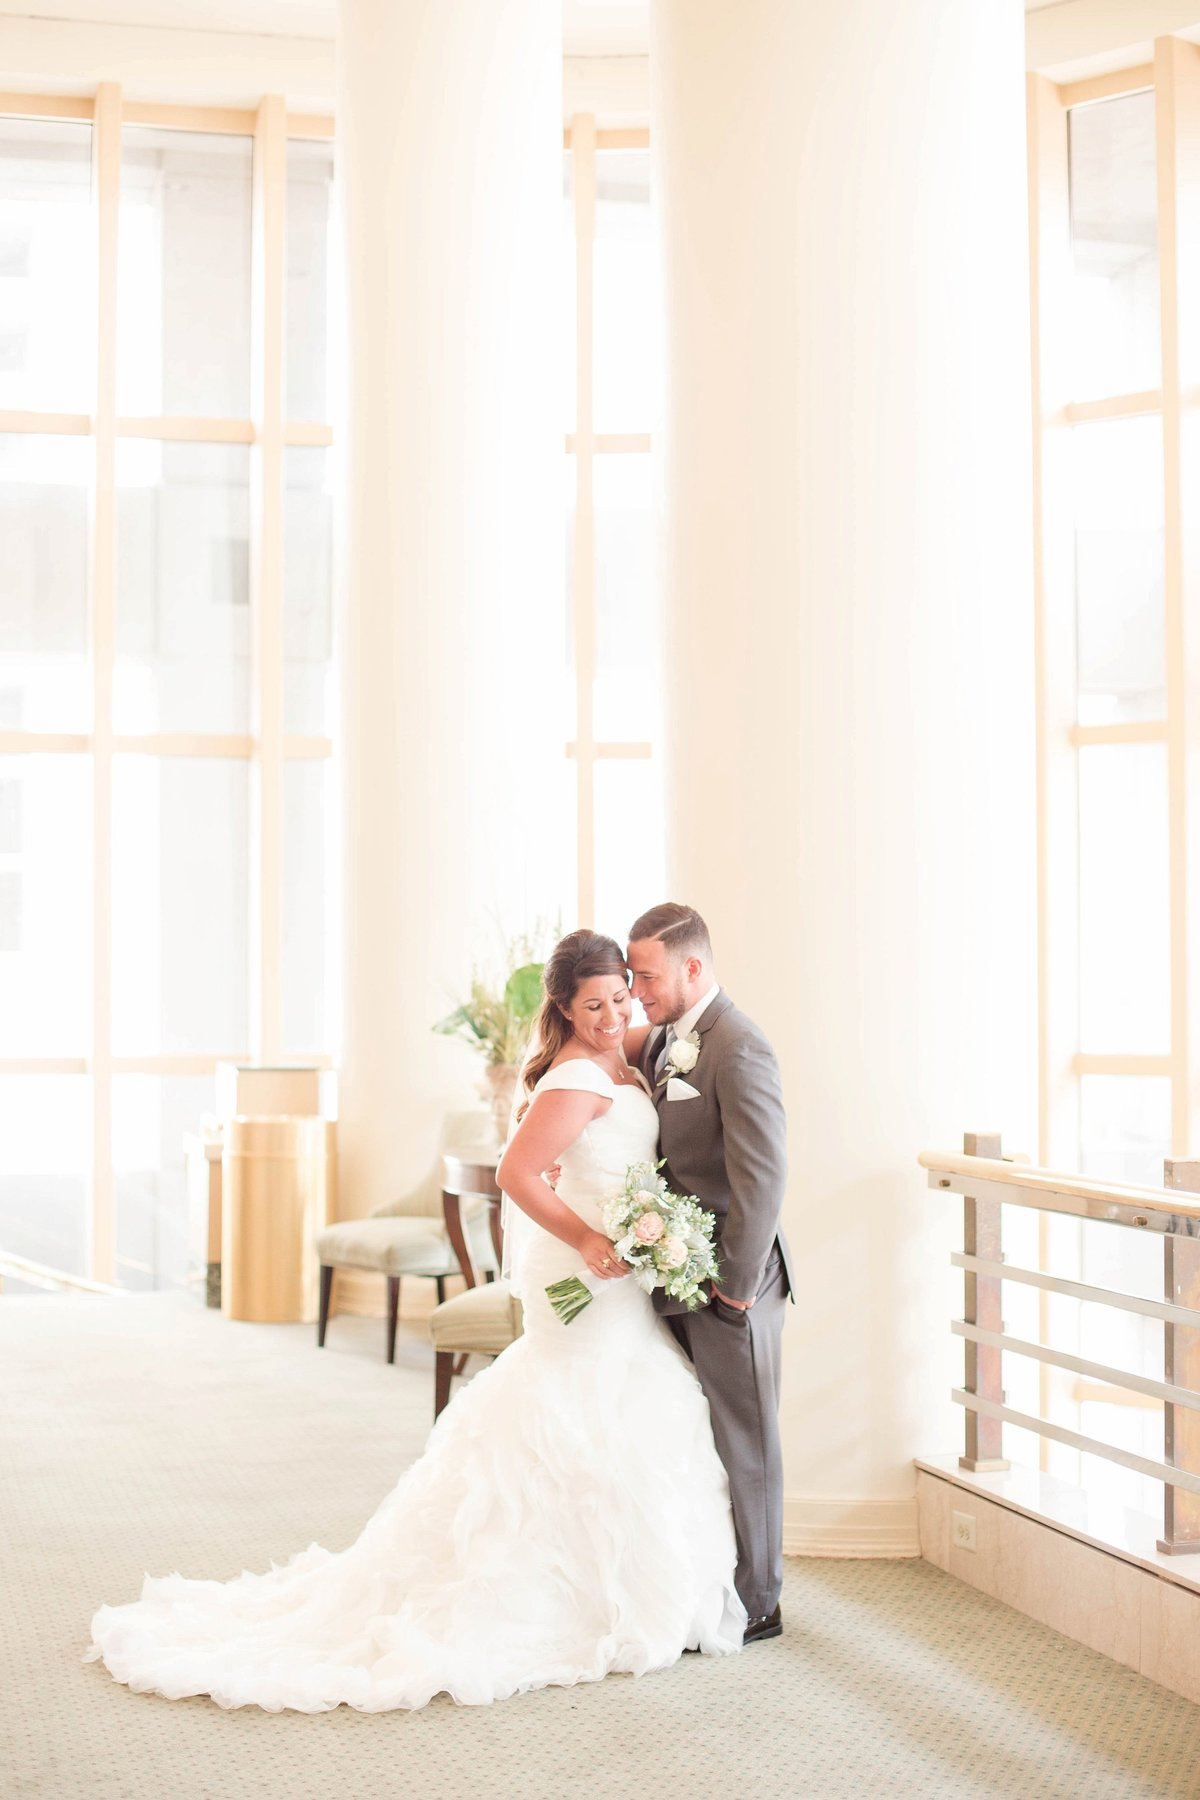 Baby Powder Blue and Blush Summer Park Inn Wedding with First Look by Toledo and Detroit Based Wedding Photographers Kent & Stephanie Photography_0983